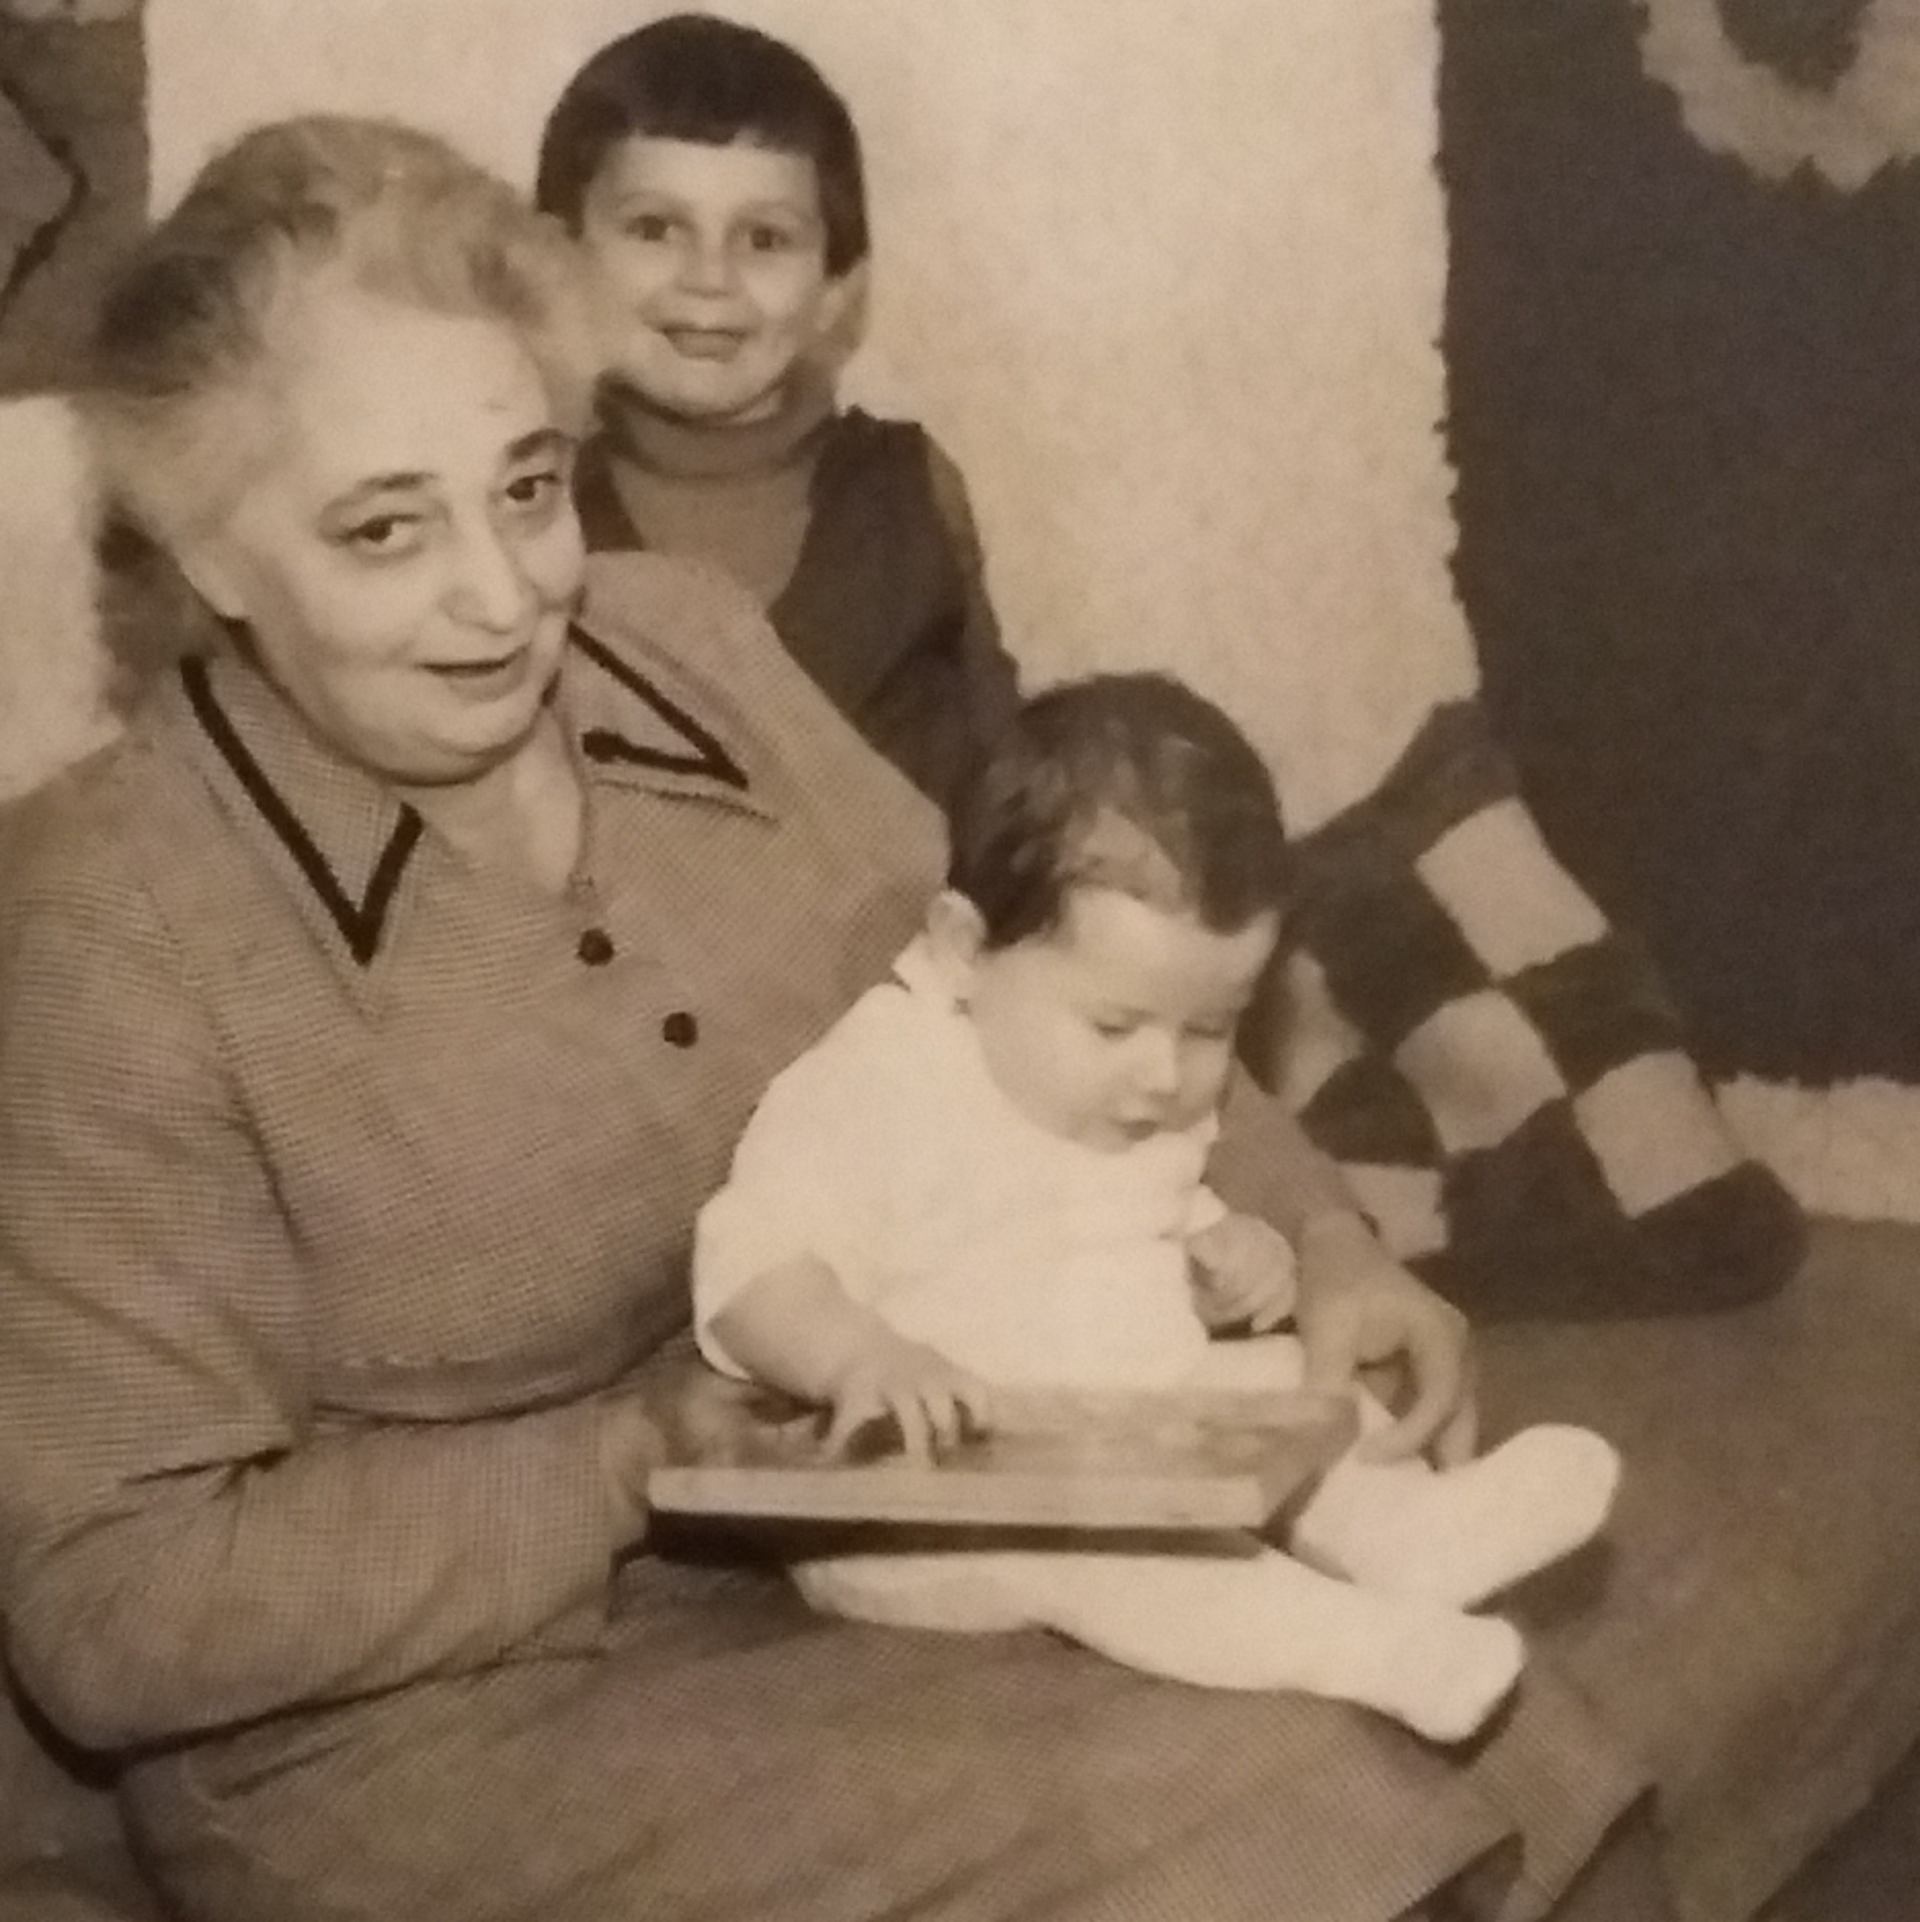 The woman from the photo in the 1970s with her grandchildren.